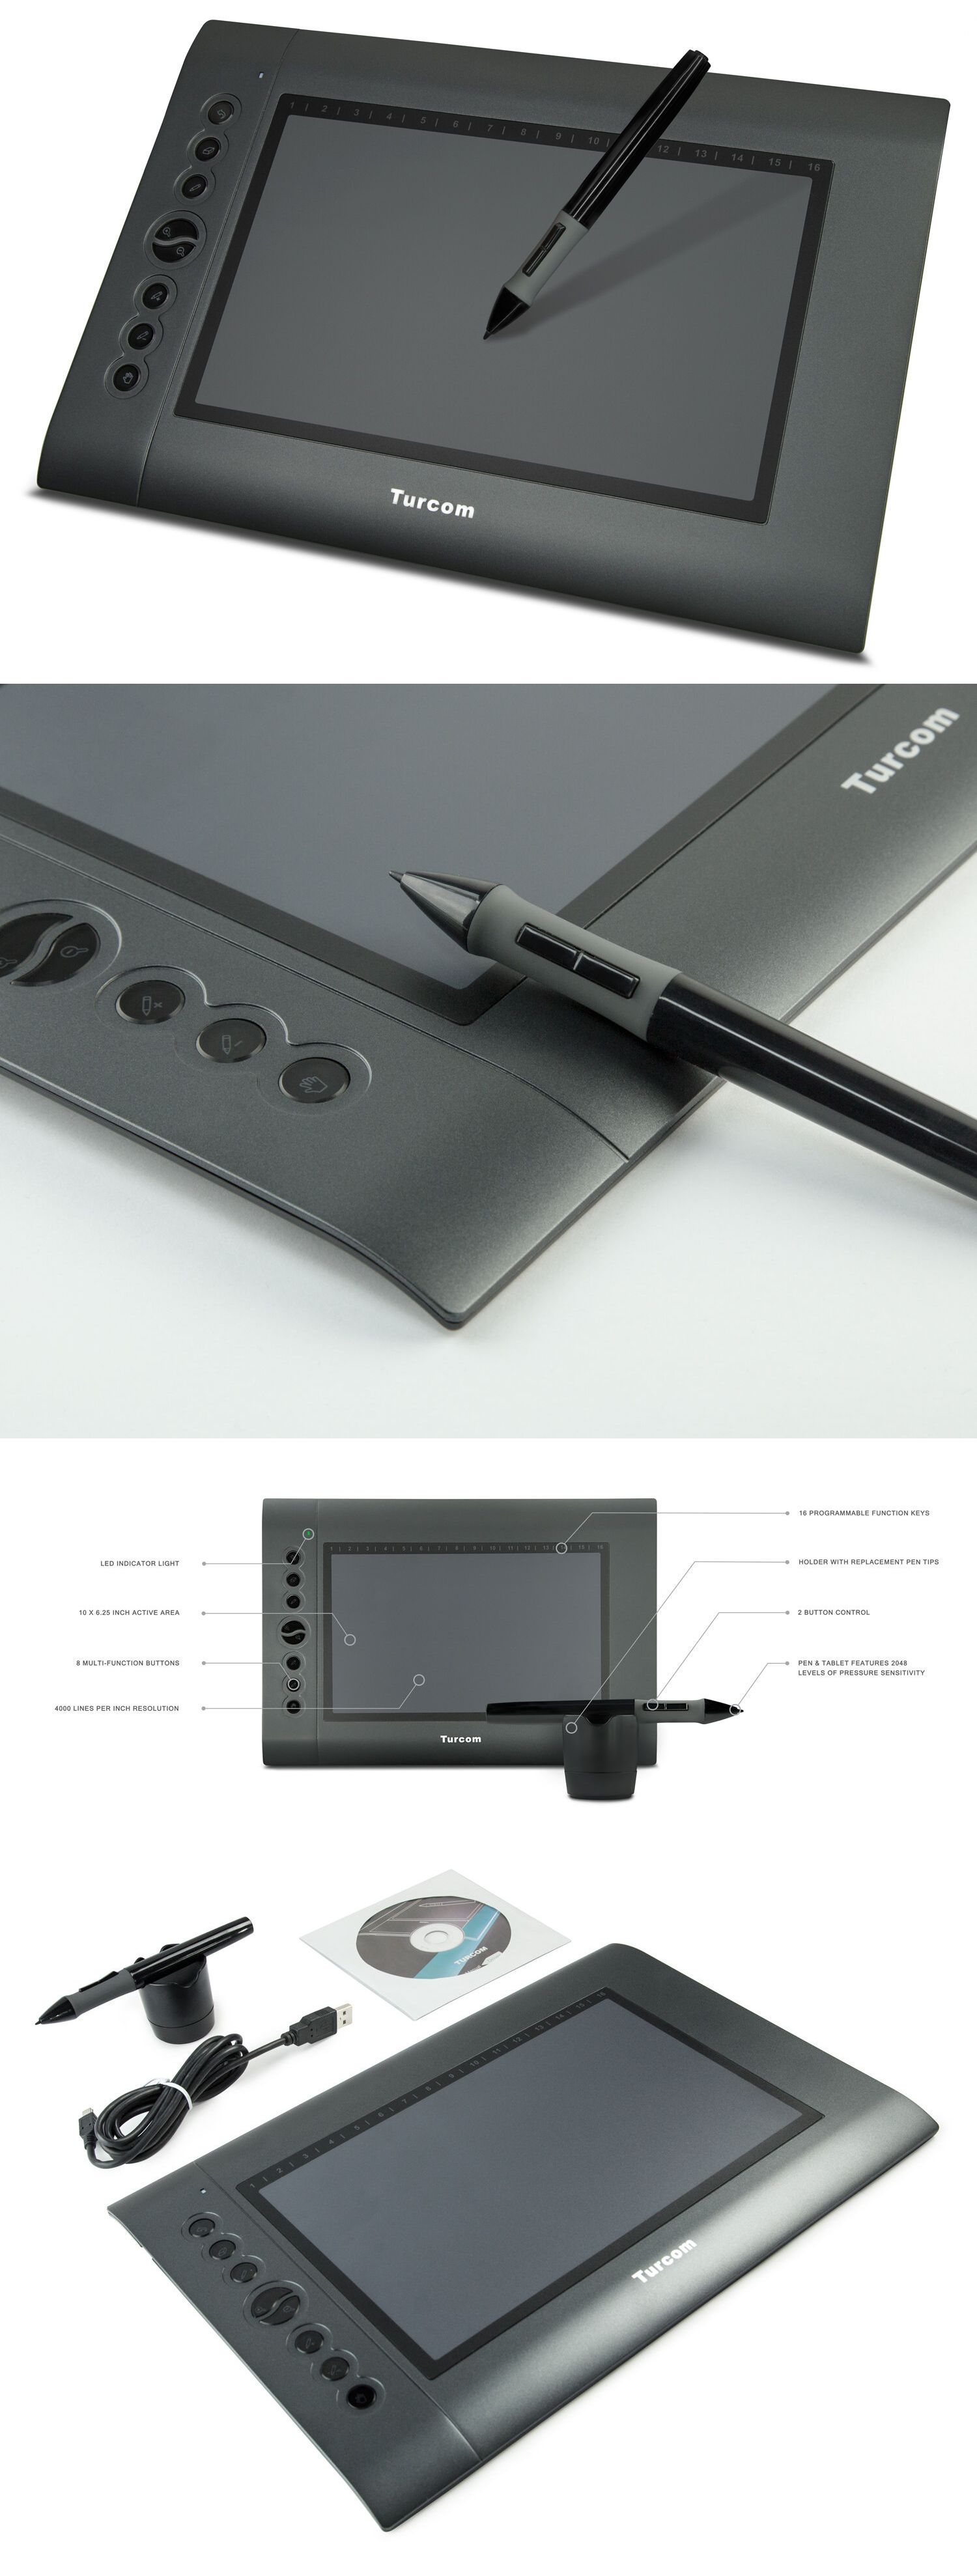 Turcom Graphic Tablet Drawing Tablets And Pen Stylus For Pc And Mac Computer Drawing Tablet Digital Drawing Tablet Mac Computer